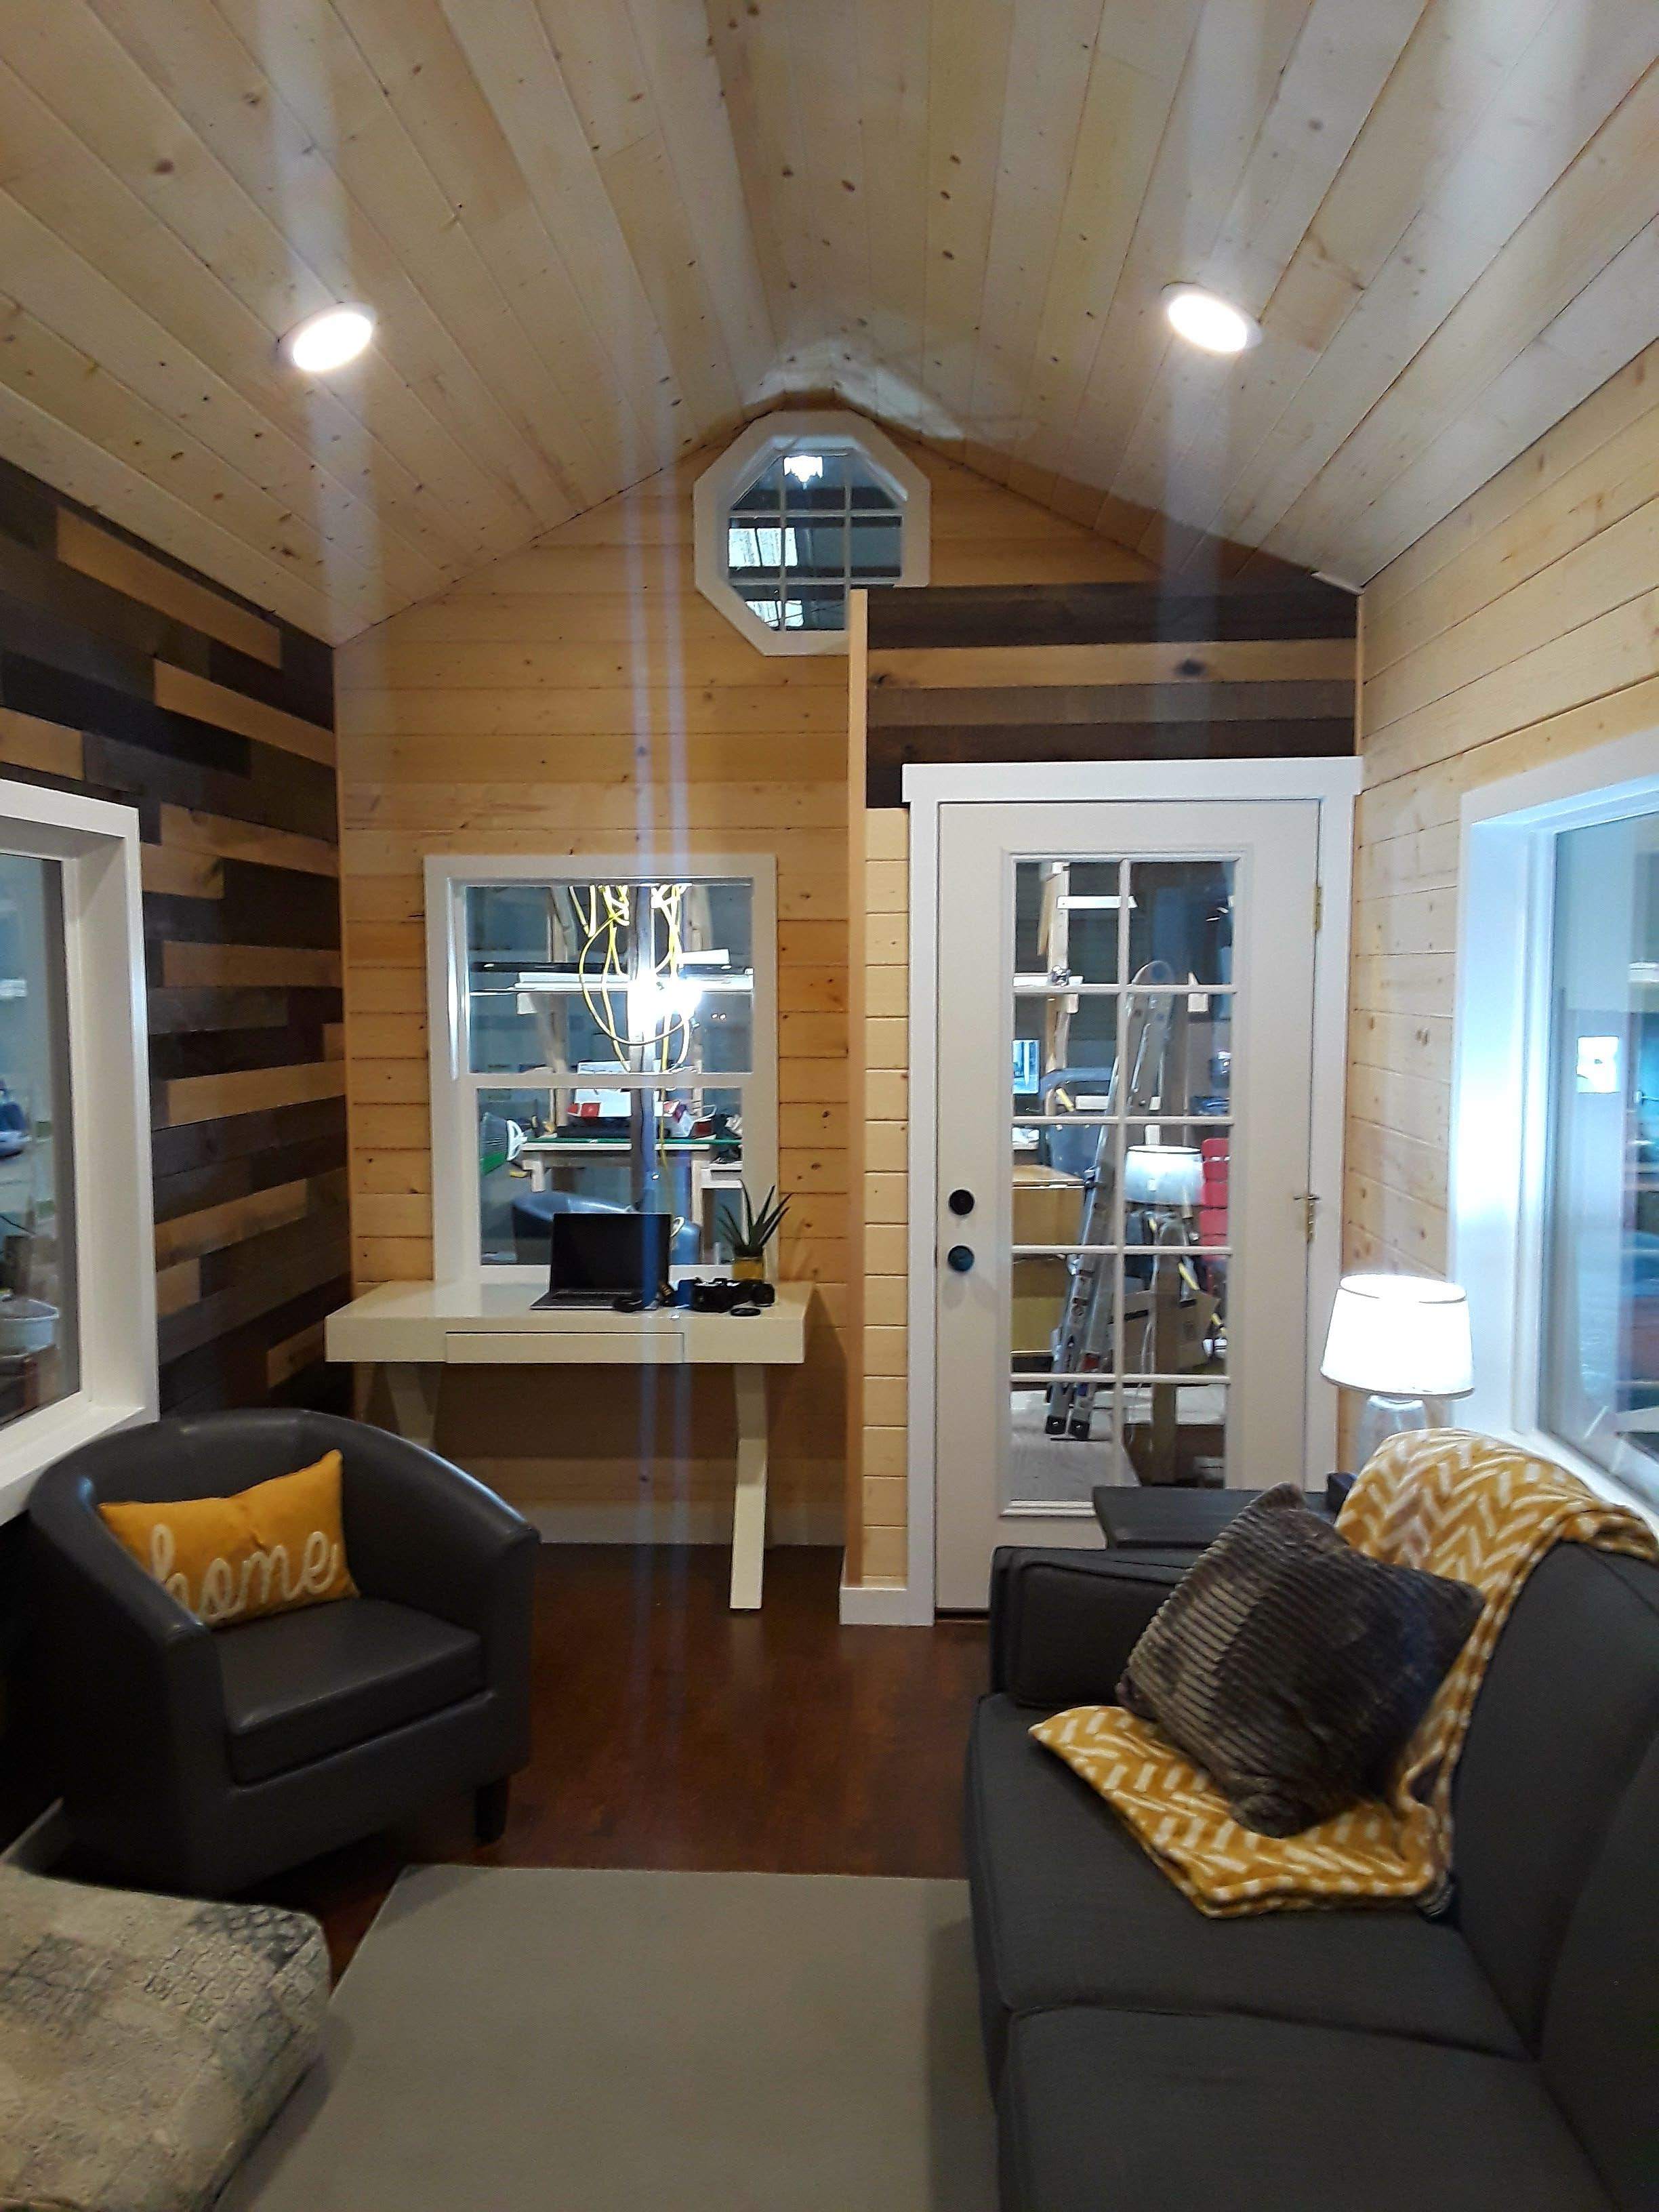 You Can Learn From Bill Gates About Tiny Homes Interior Courtesy Of Seattle Home Show